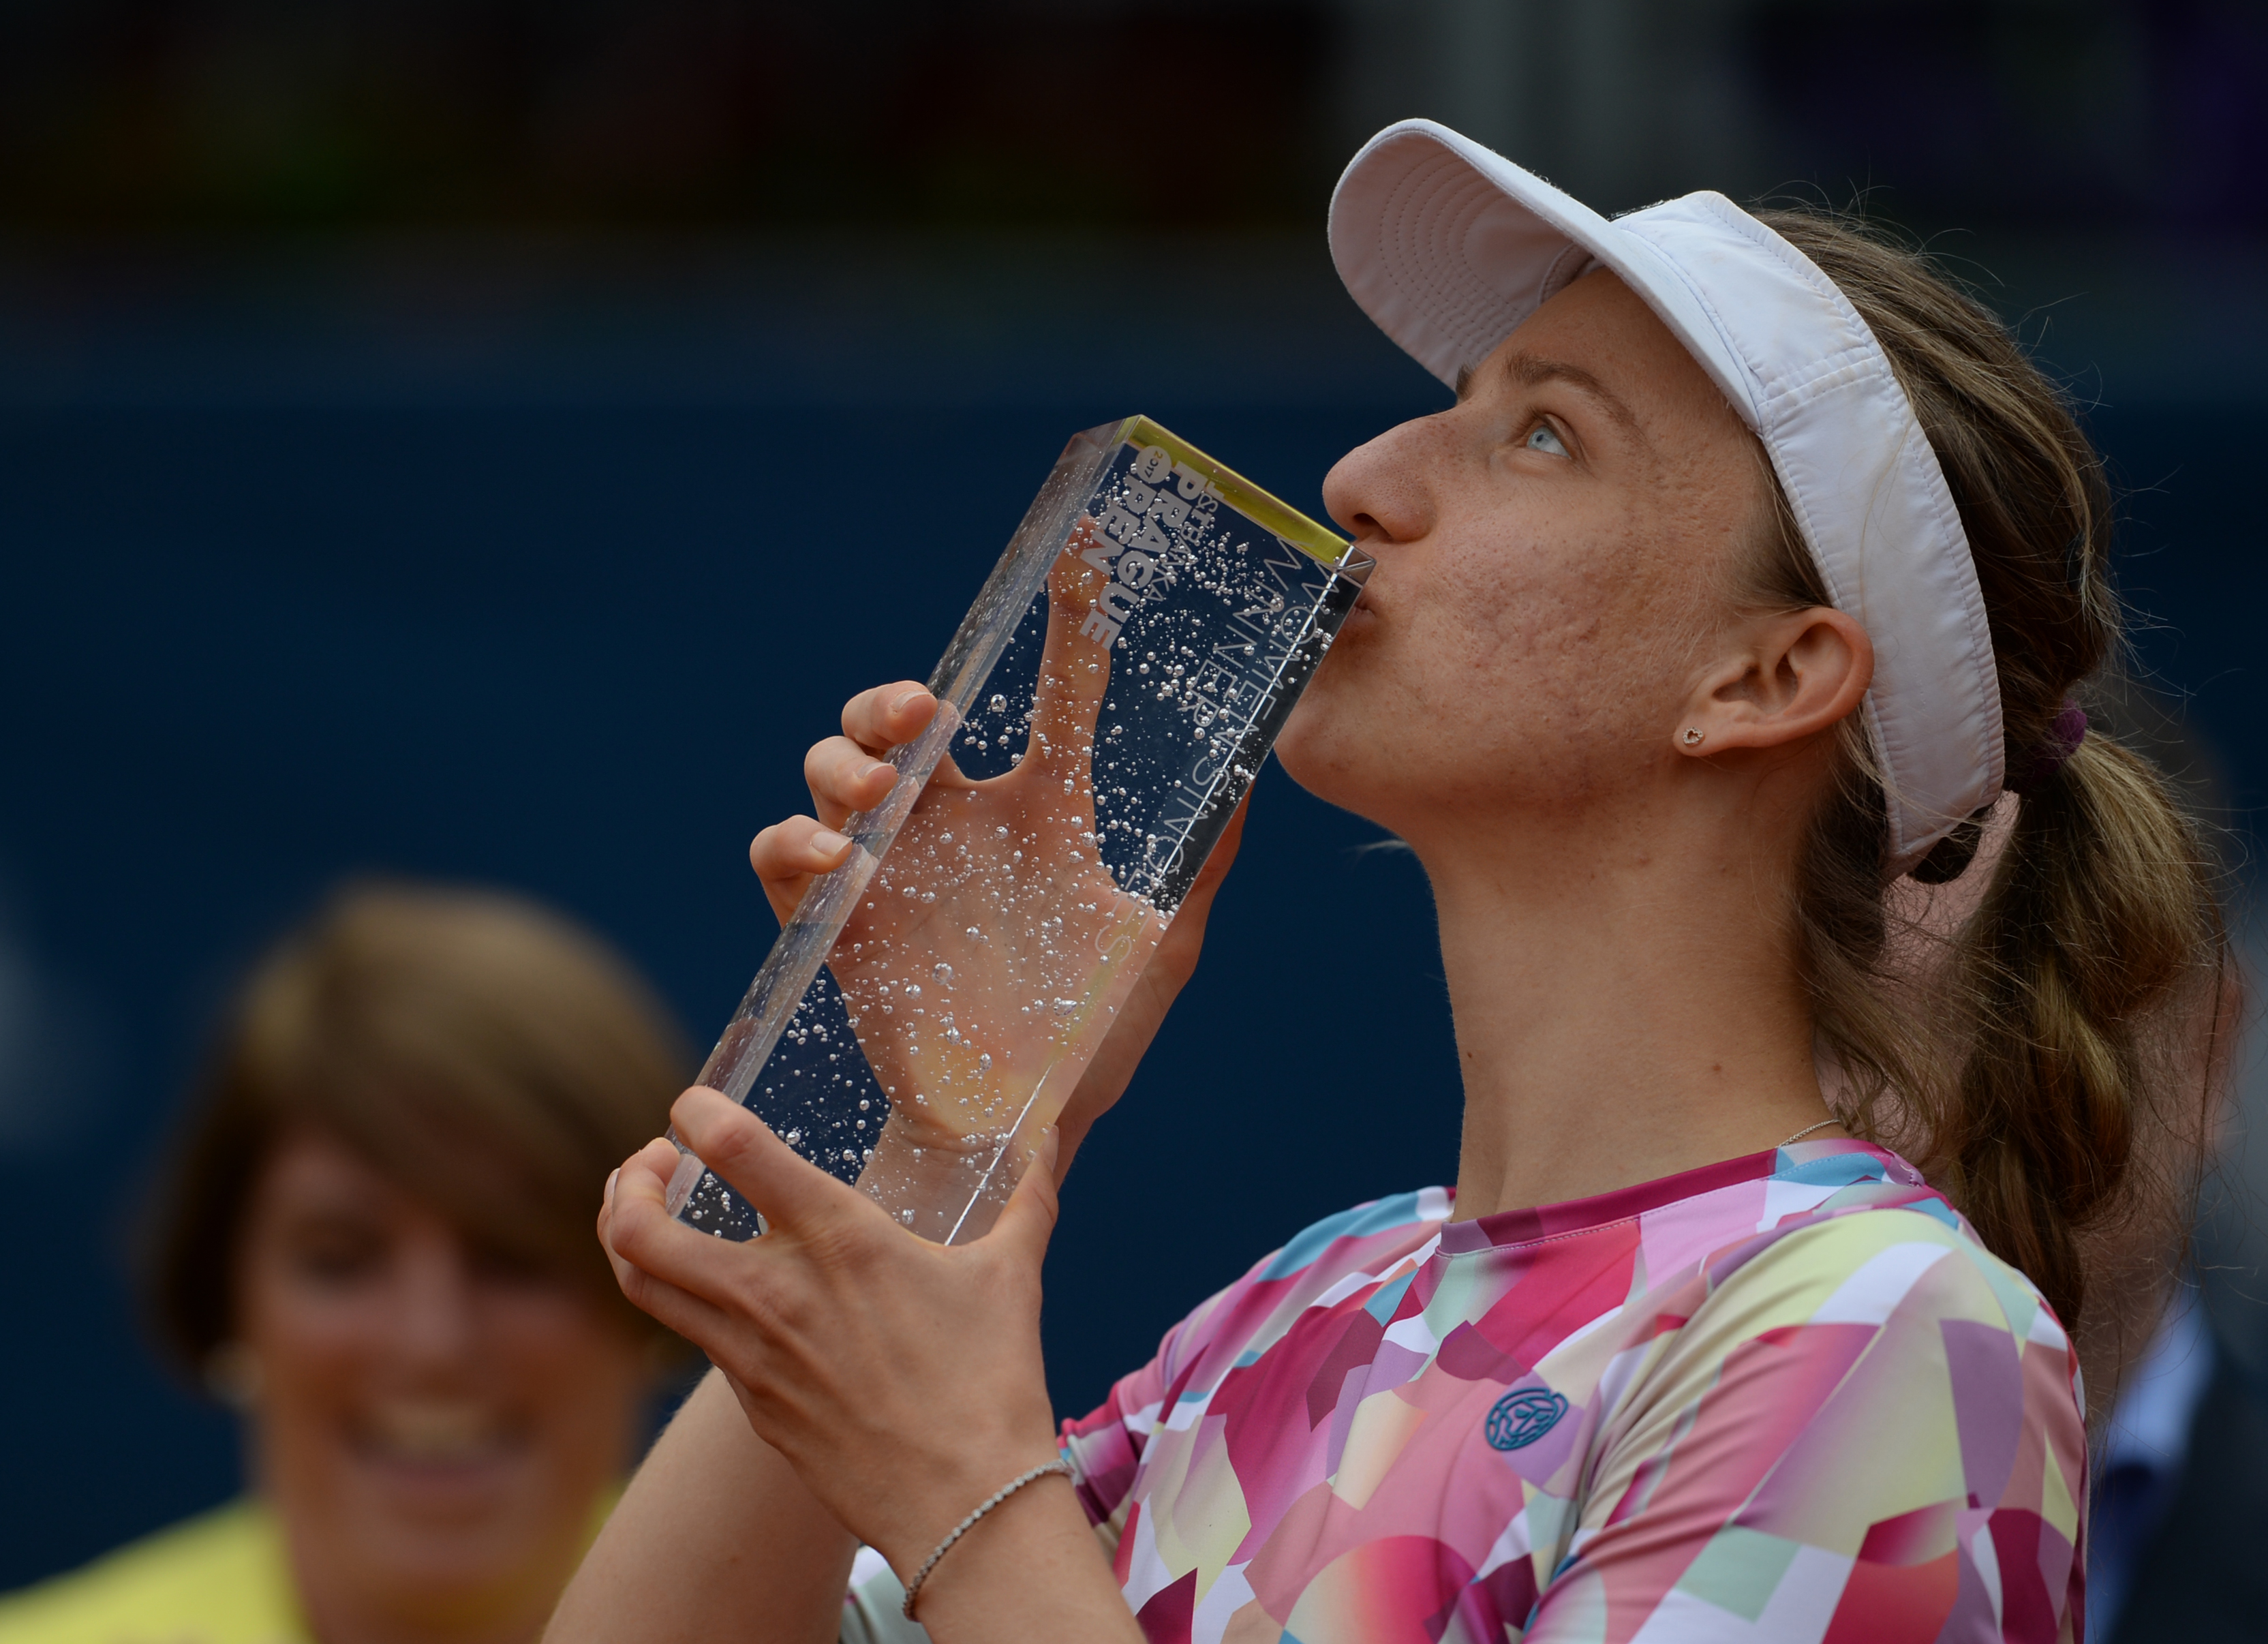 German Mona Barthel kisses the trophy after winning over Czech's Kristyna Pliskova during their final tennis match at the Prague Open on May 6, 2017 in Prague. / AFP PHOTO / Michal Cizek (Photo credit should read MICHAL CIZEK/AFP/Getty Images)